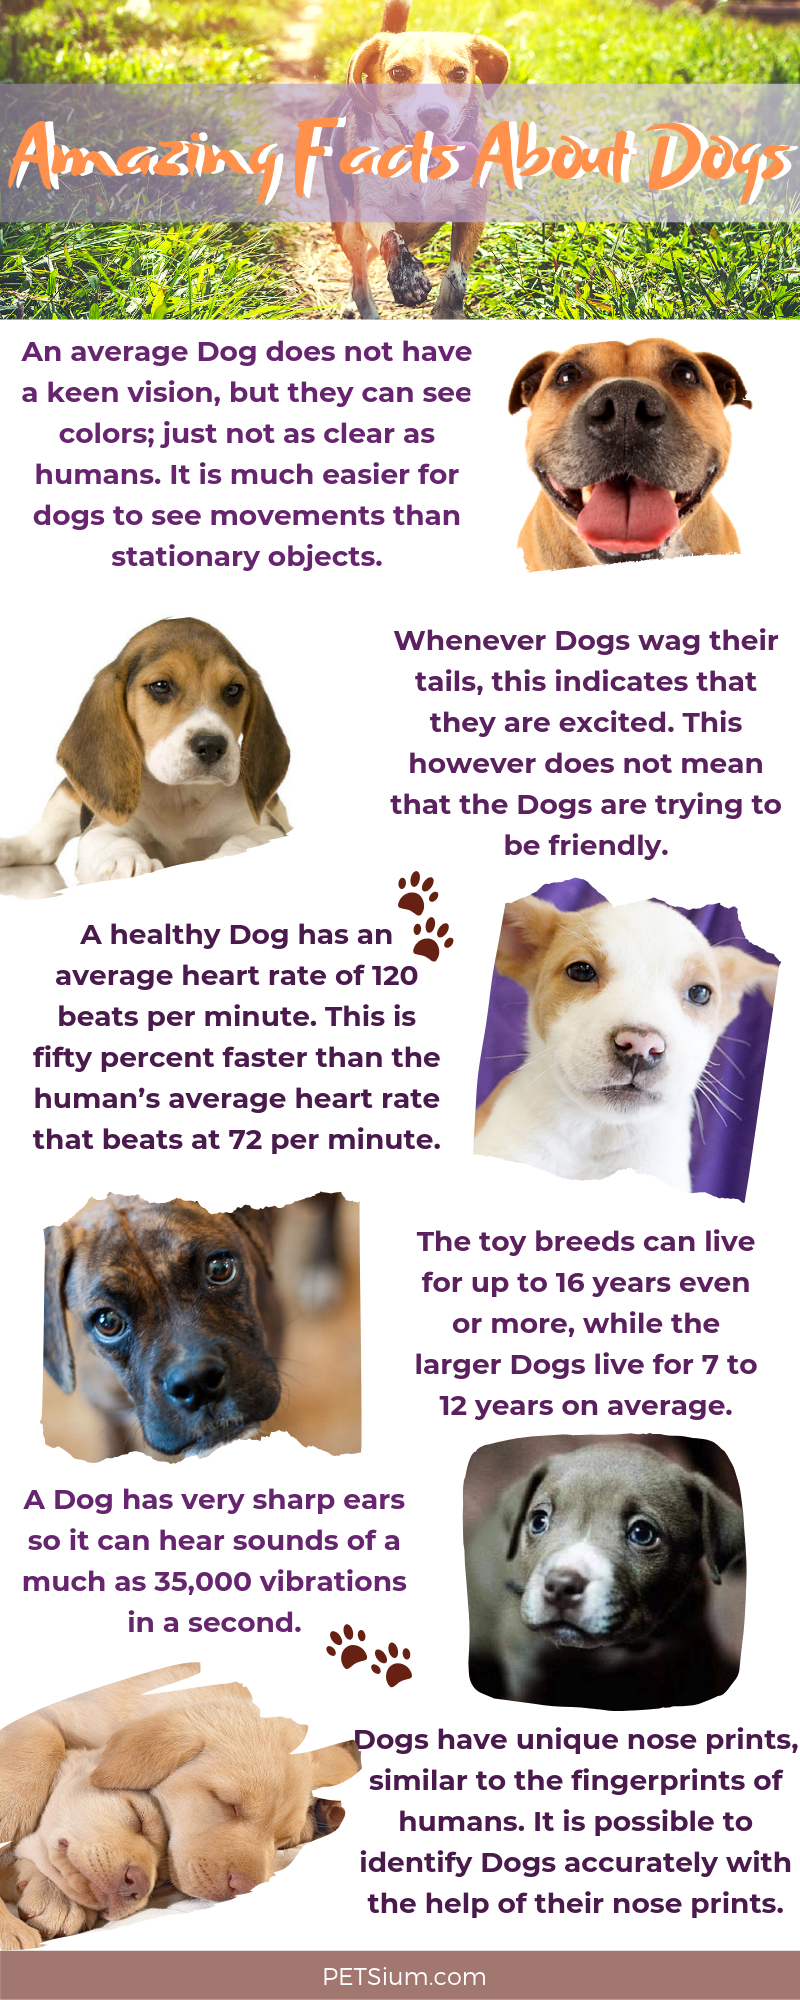 what are interesting facts about dogs infographic